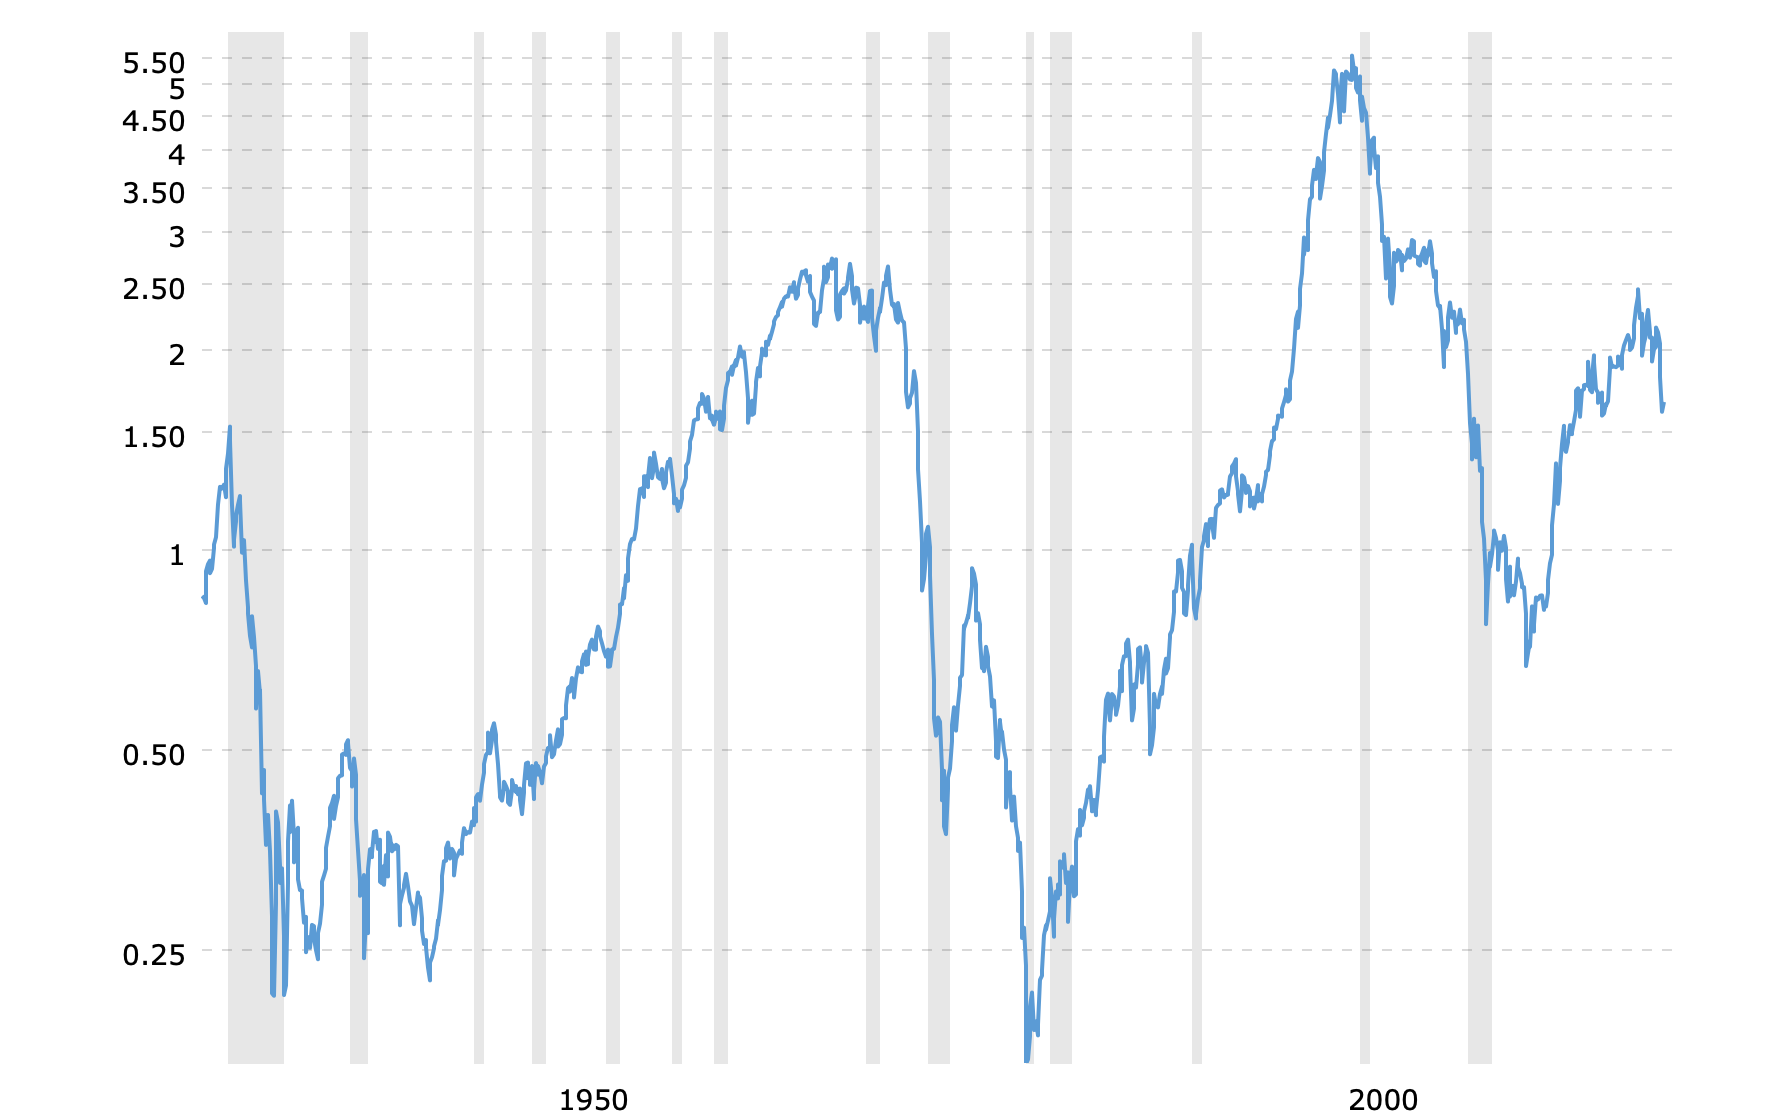 sp500-to-gold-ratio-chart-2020-04-28-macrotrends